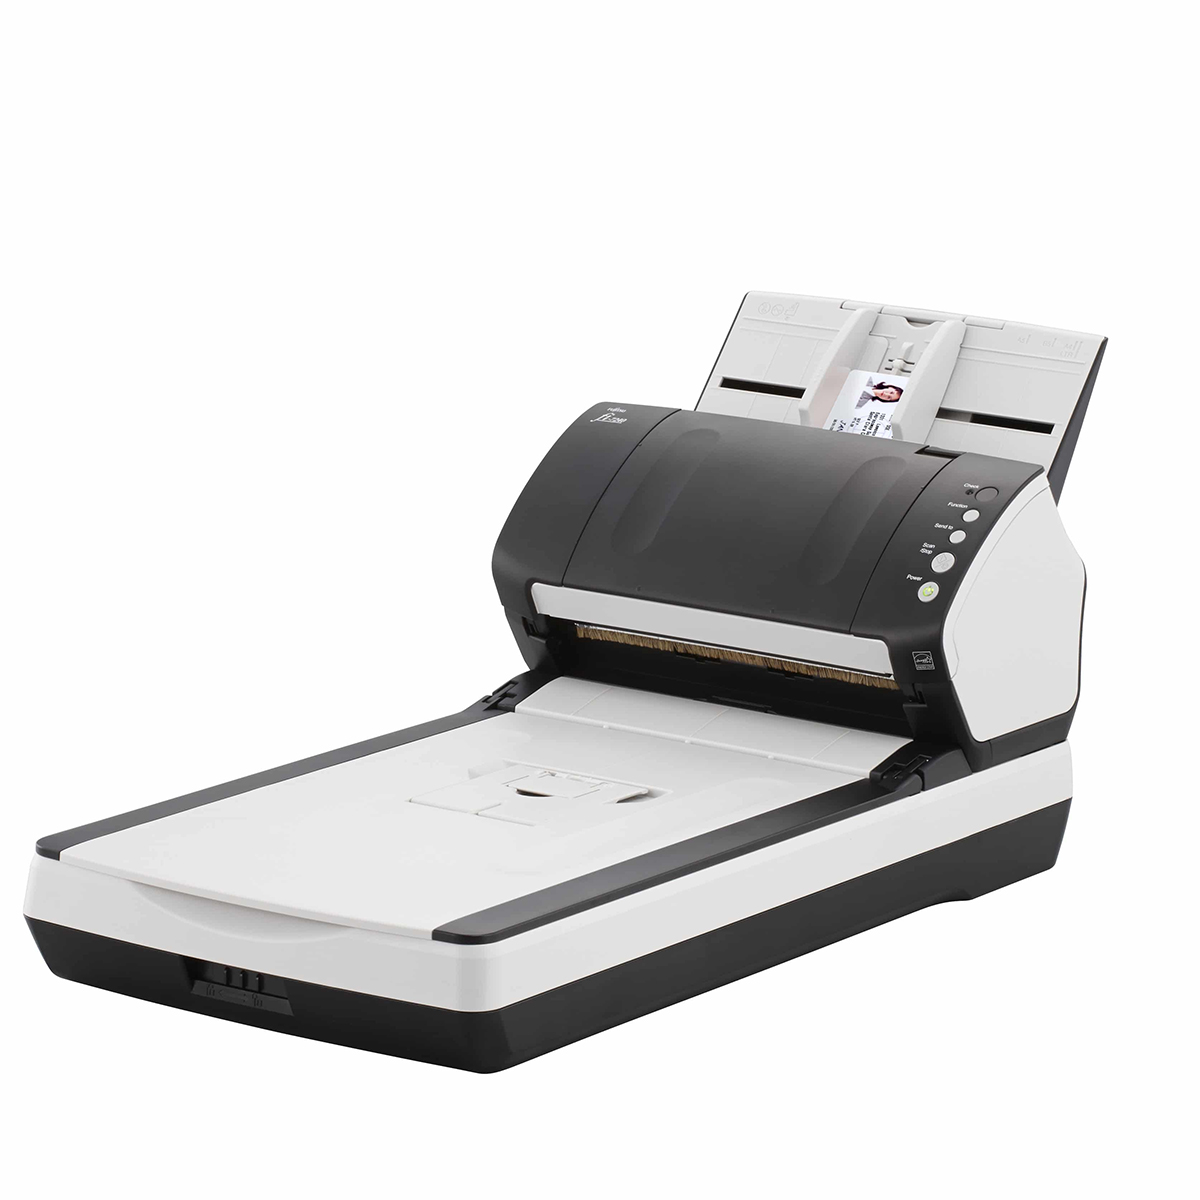 fujitsu document scanner fi 5950